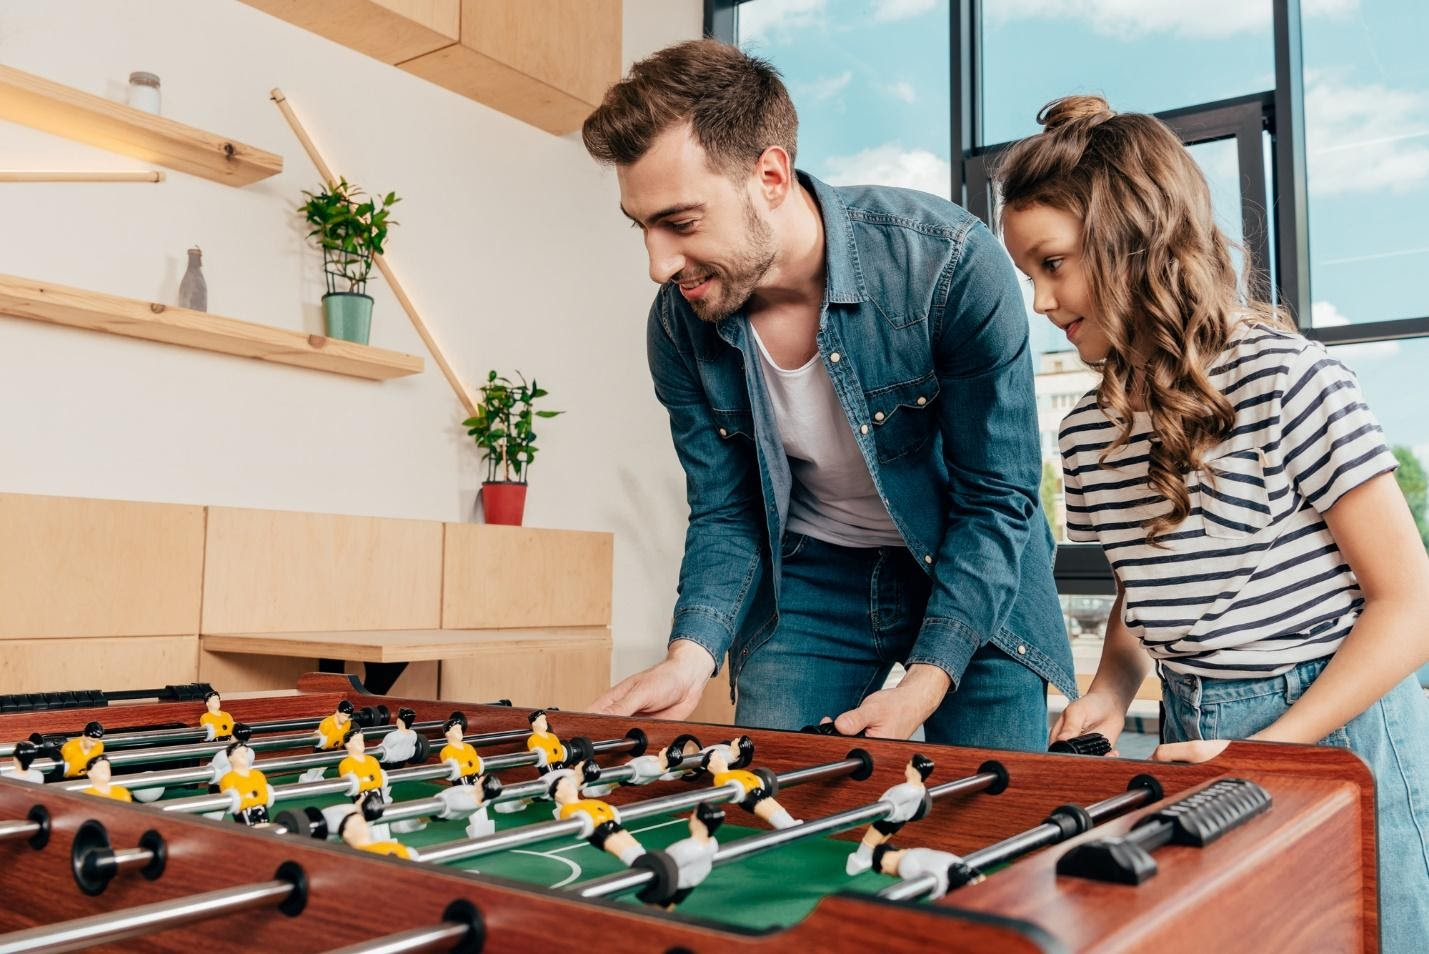 Buying Guide for a Foosball Table